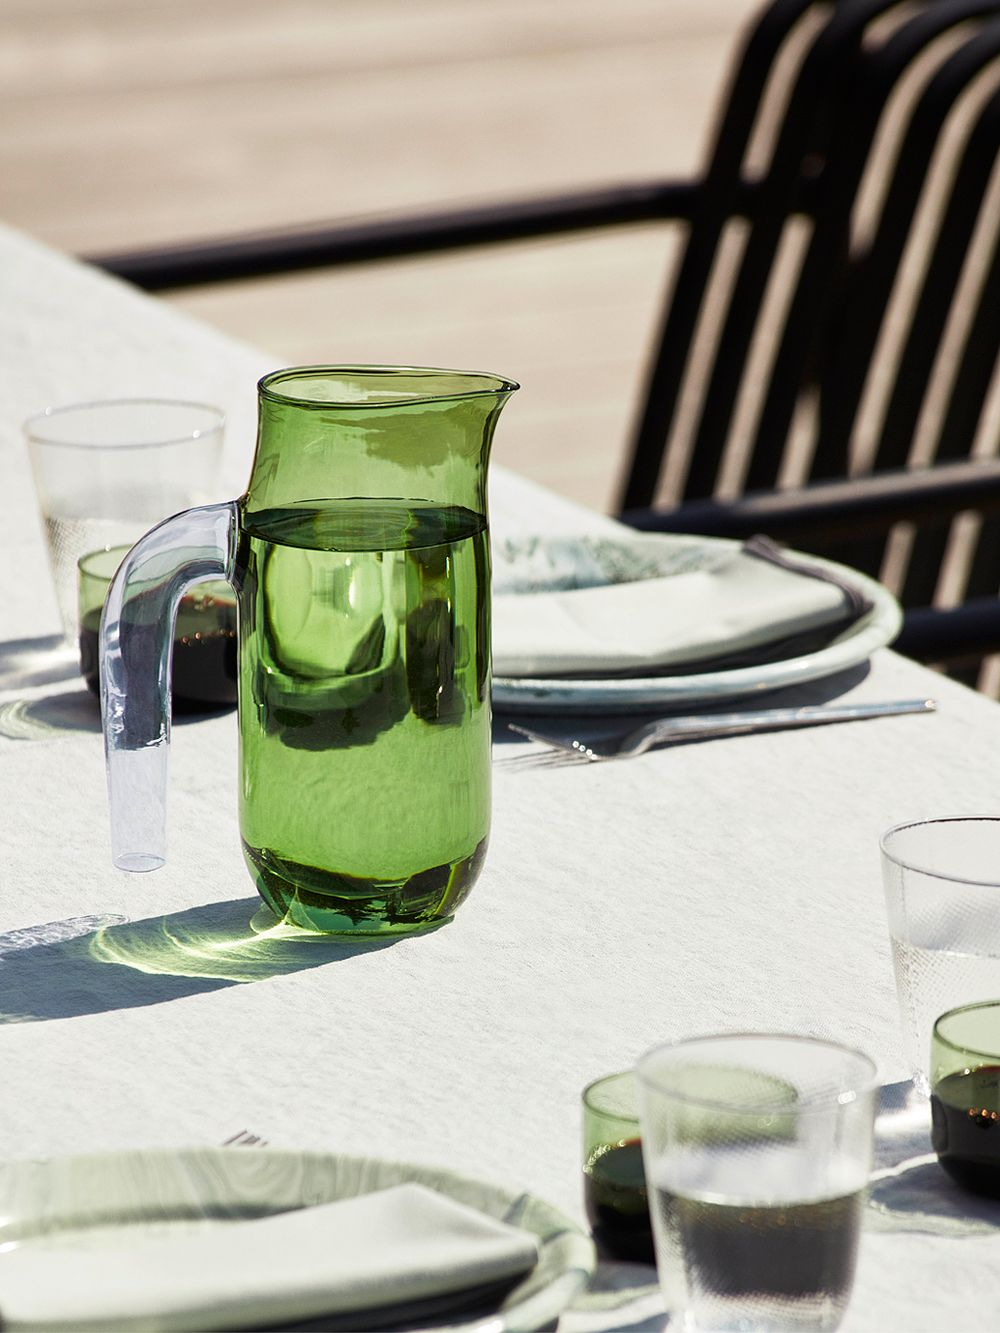 Hay's green glass jug with a lilac handle